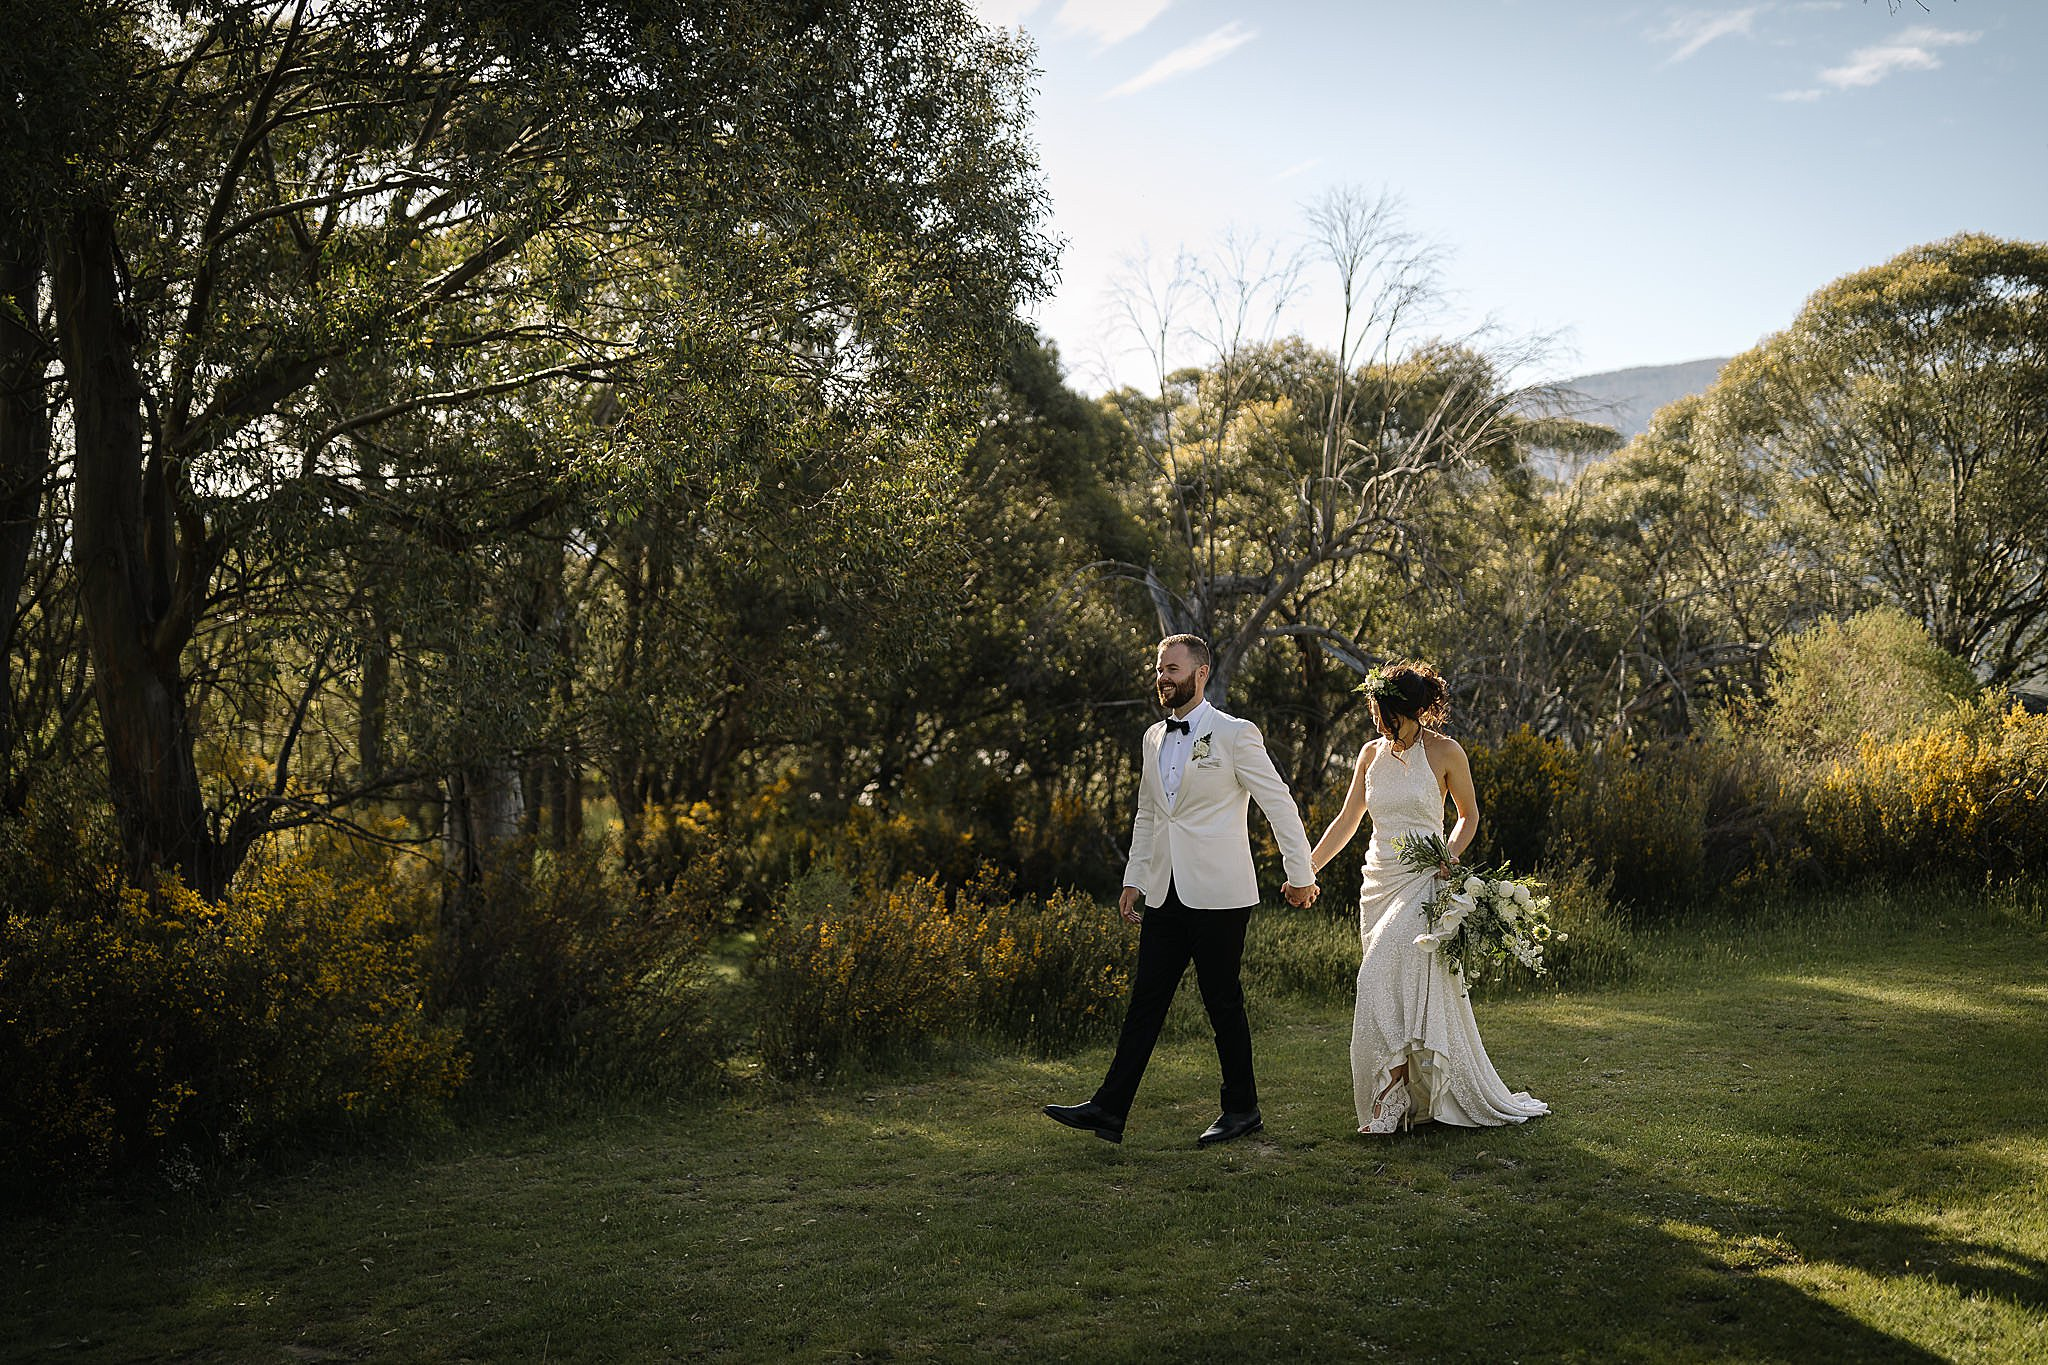 Lake Crackenback wedding,Snowy Mountains Wedding Photographer,Destination photographer,Keepsakephoto by the Keeffes,ACT wedding photographer,ACT weddings,canberra weddings,Canberra Wedding Photographer,Bowral Wedding Photographer,destination wedding photography,Thredbo Wedding Photography,Thredbo,Inspiration,Wedding,